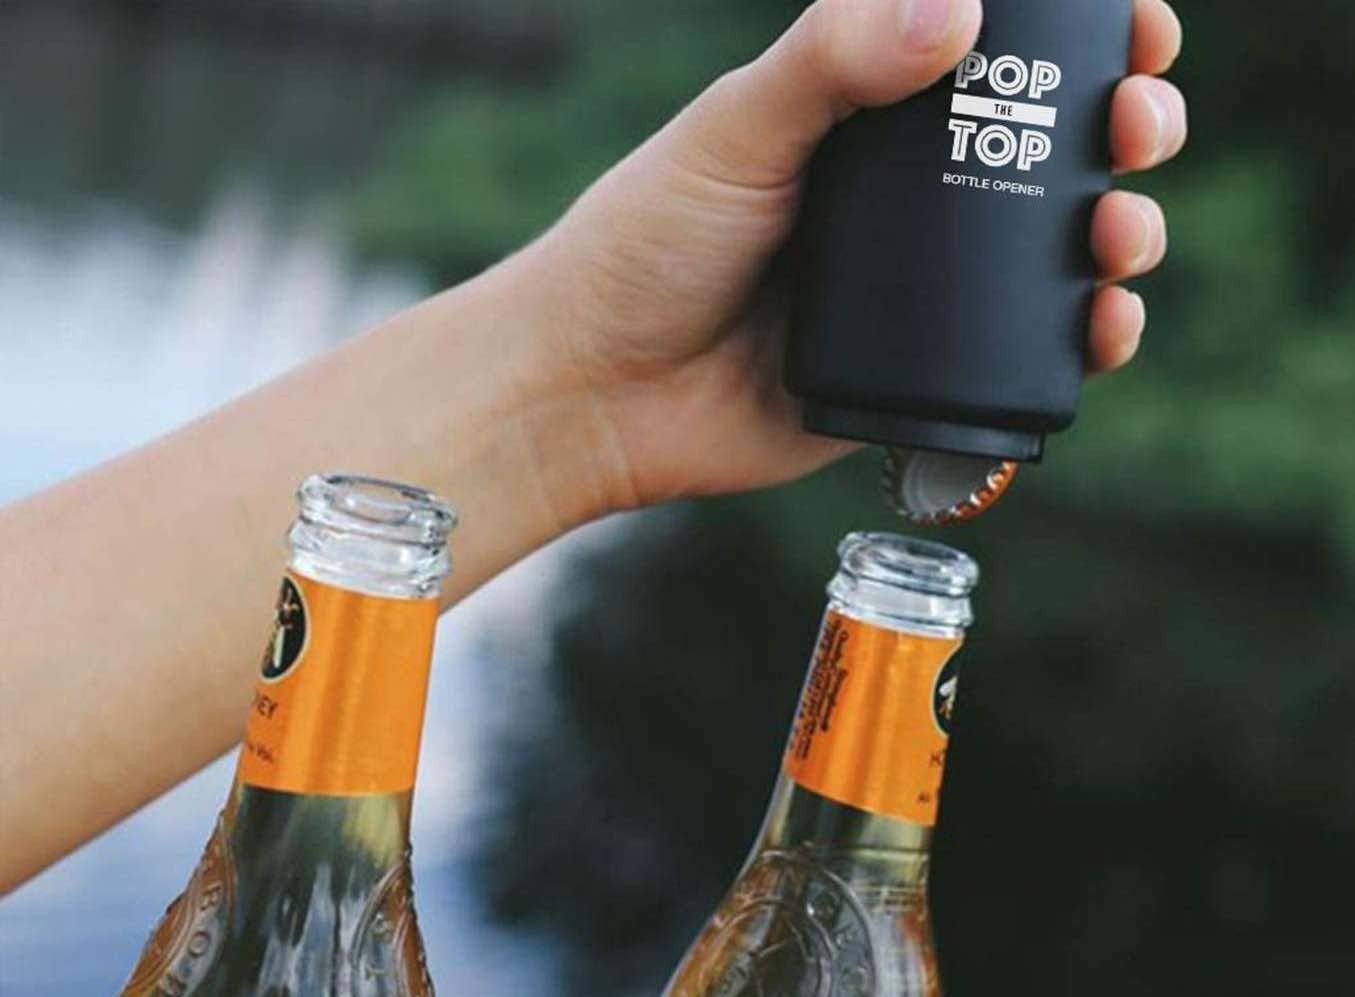 PoptheTop Automatic Beer Bottle Opener